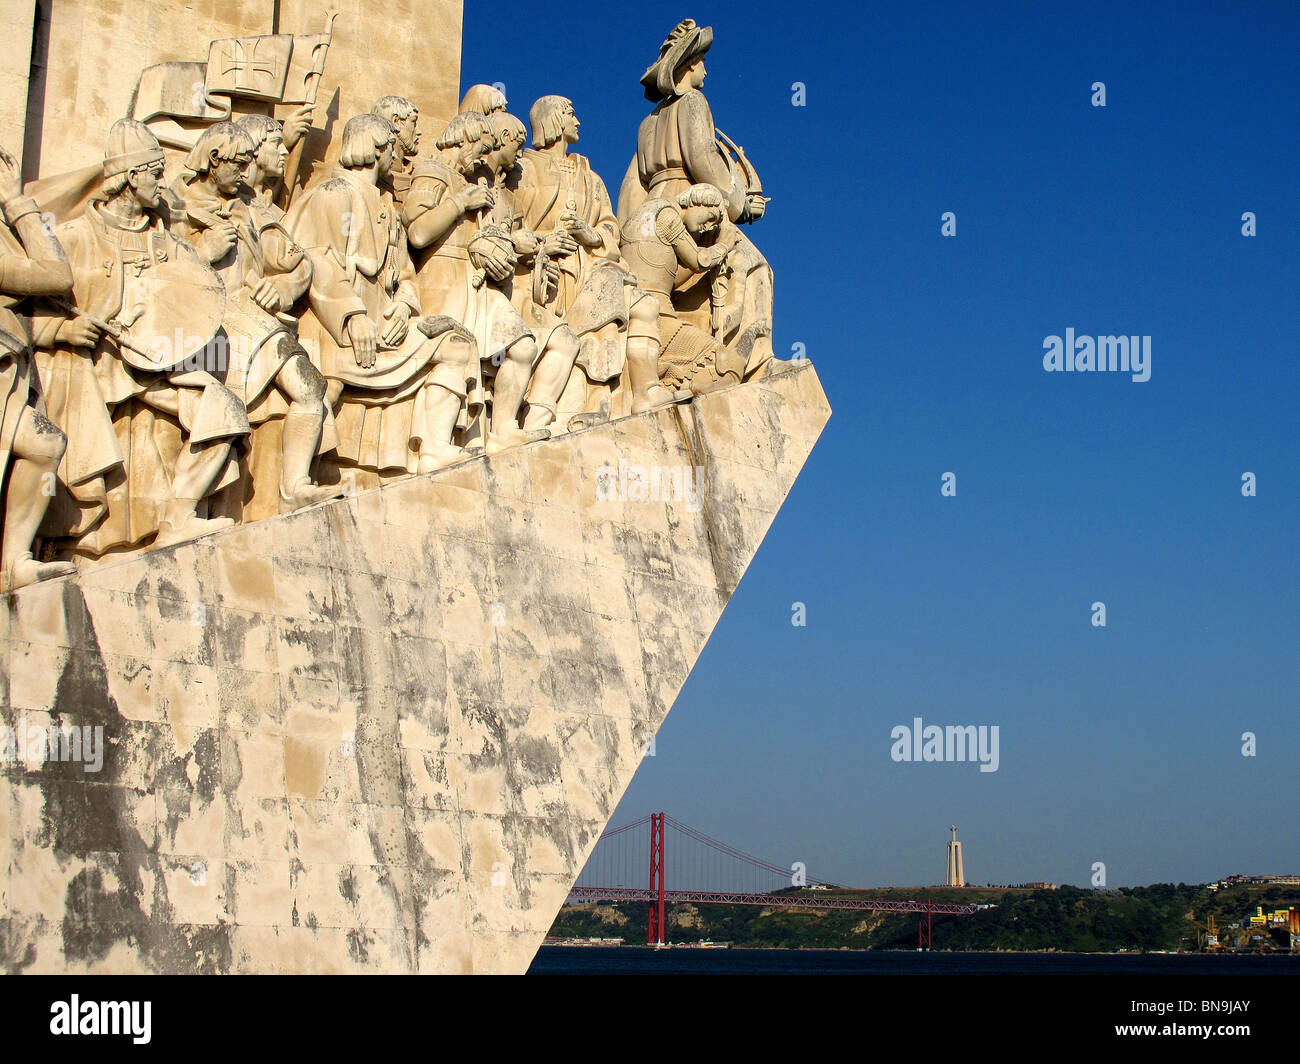 The monument to discoveries on the waterfront at Belem in Lisbon Portugal - Stock Image